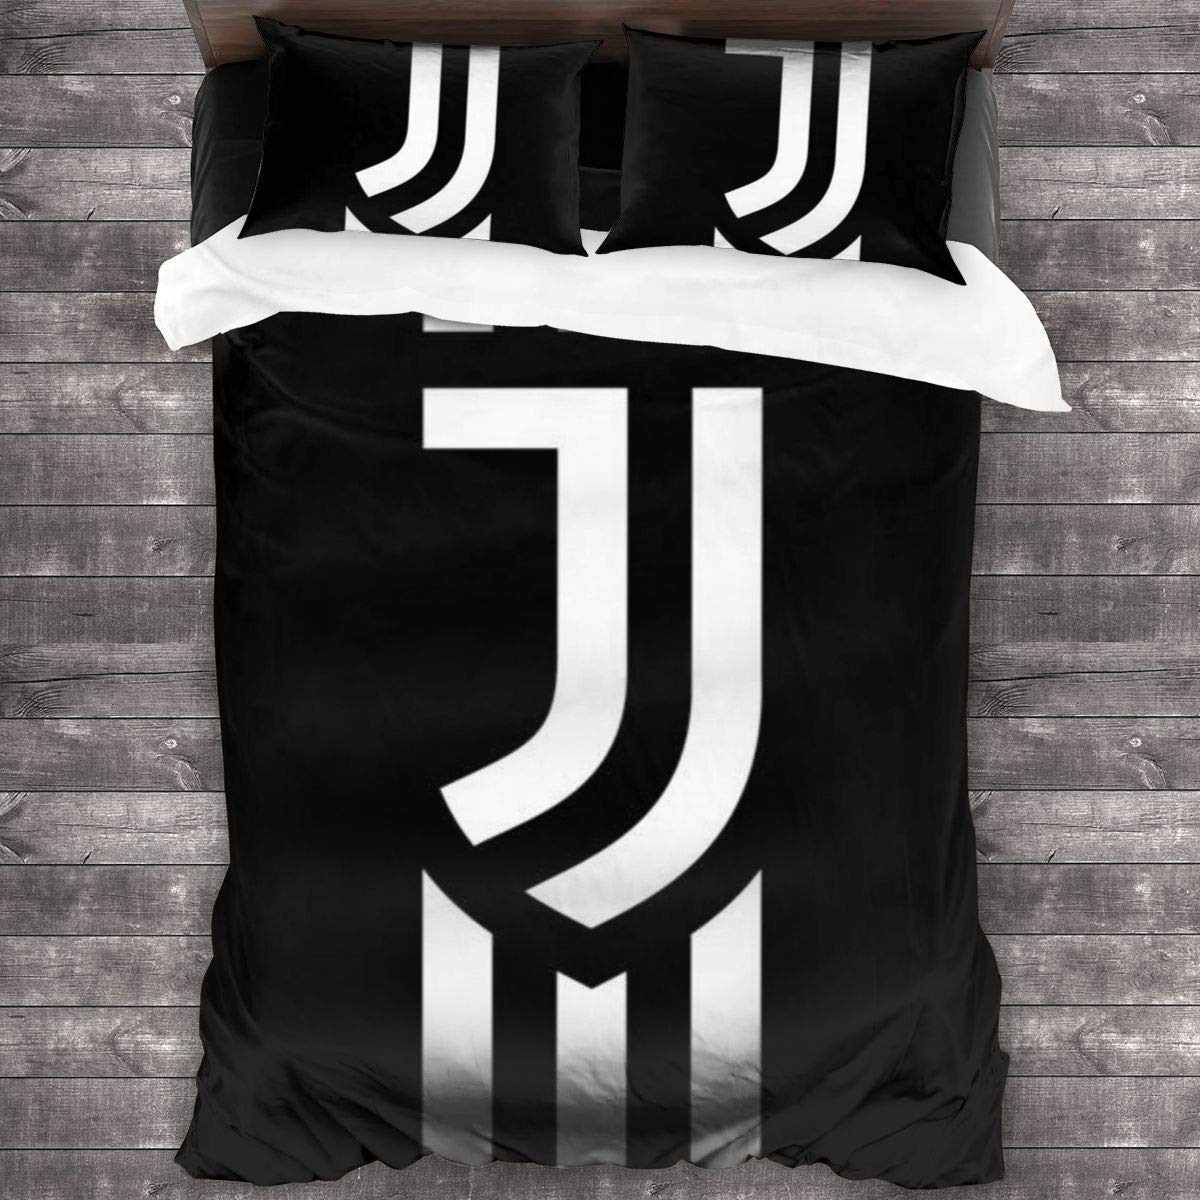 Not Juventus Bed Bedding Set Of Three Sets Of Pieces Quilt Cover Pillowcases Super Soft Microfiber Buy Online In Armenia Missing Category Value Products In Armenia See Prices